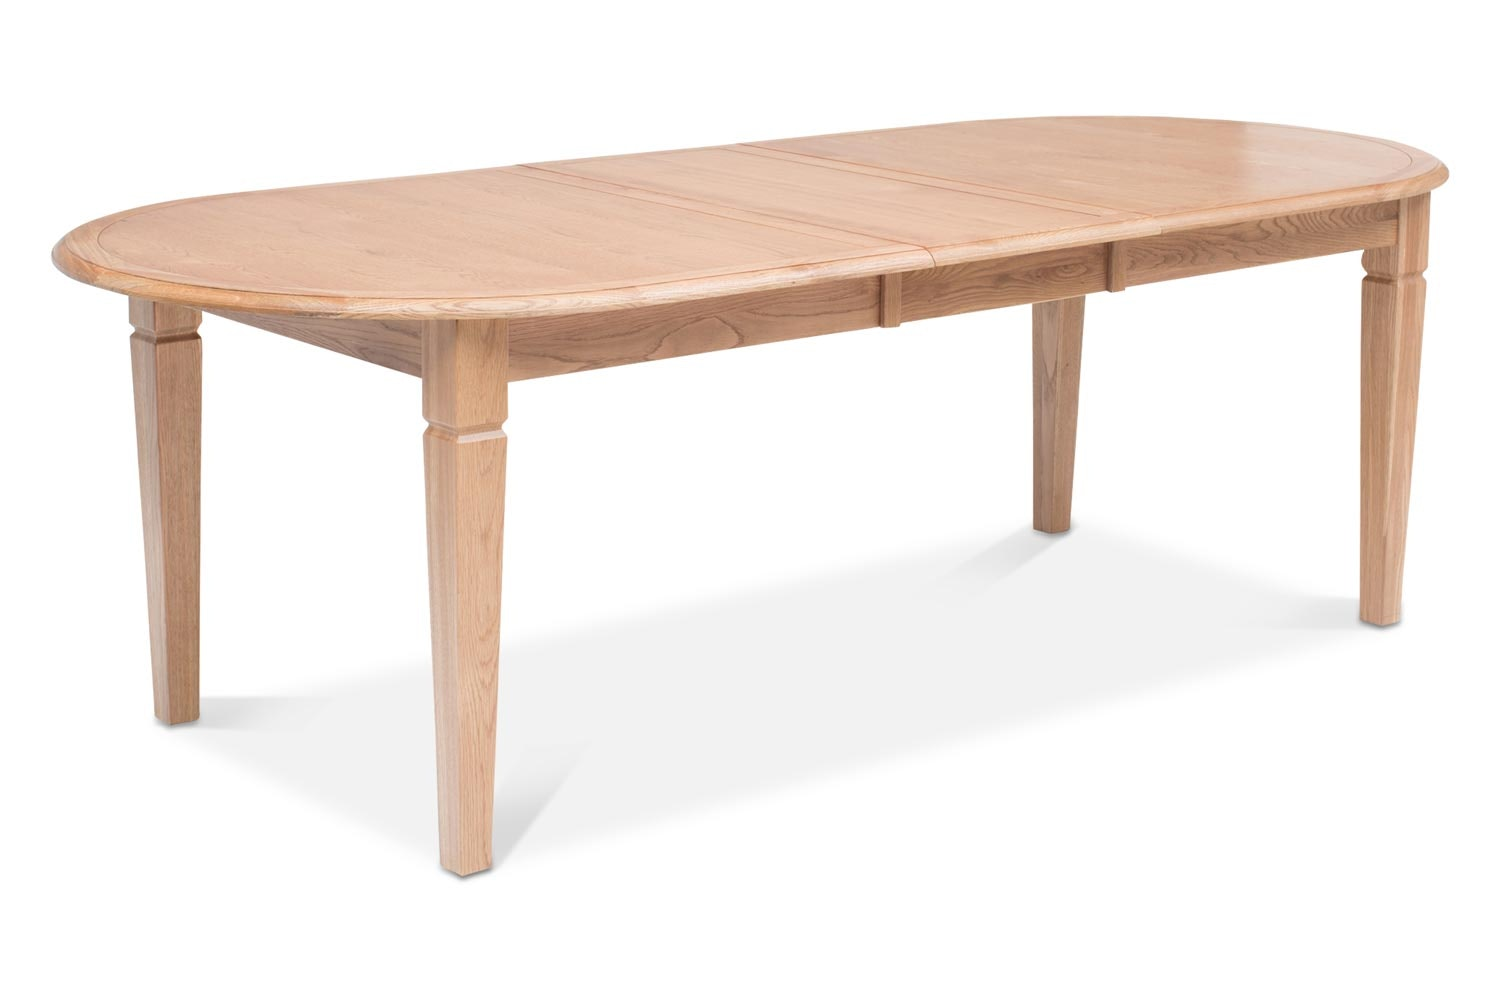 Prunella Oval Extending Dining Table